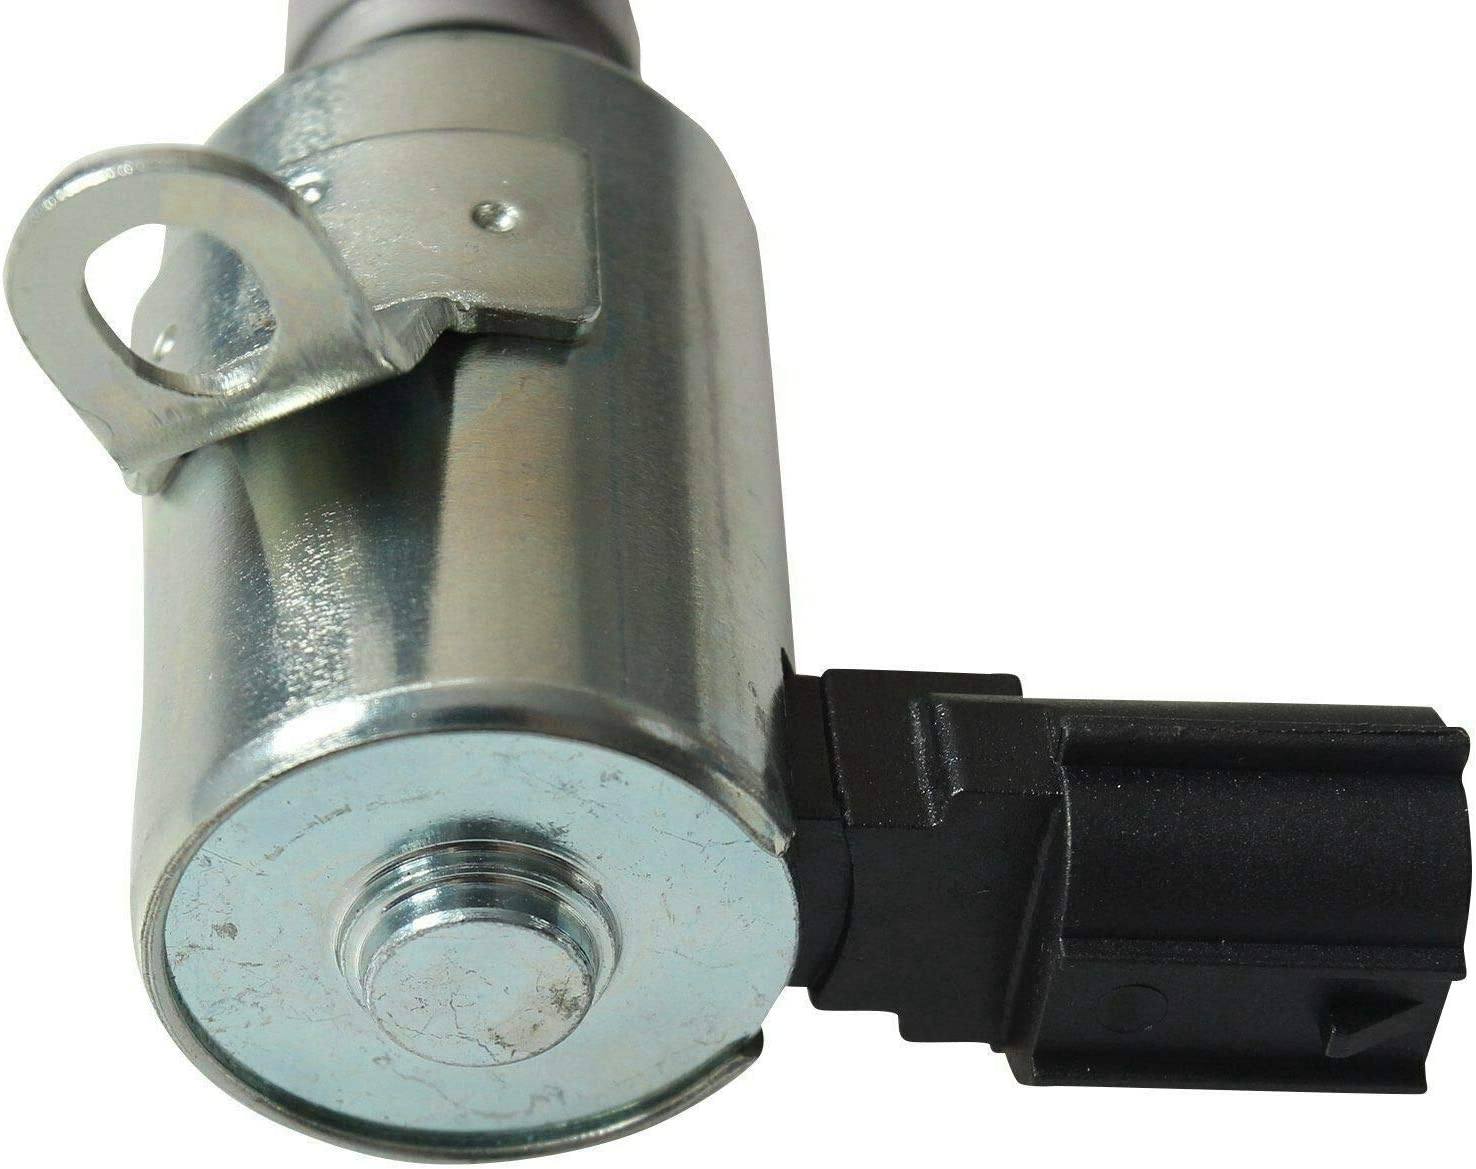 Bank 2 15330-20010 15340-20010 PP19014S VVT Oil Control Valve Engine Variable Timing Solenoid Bank 1